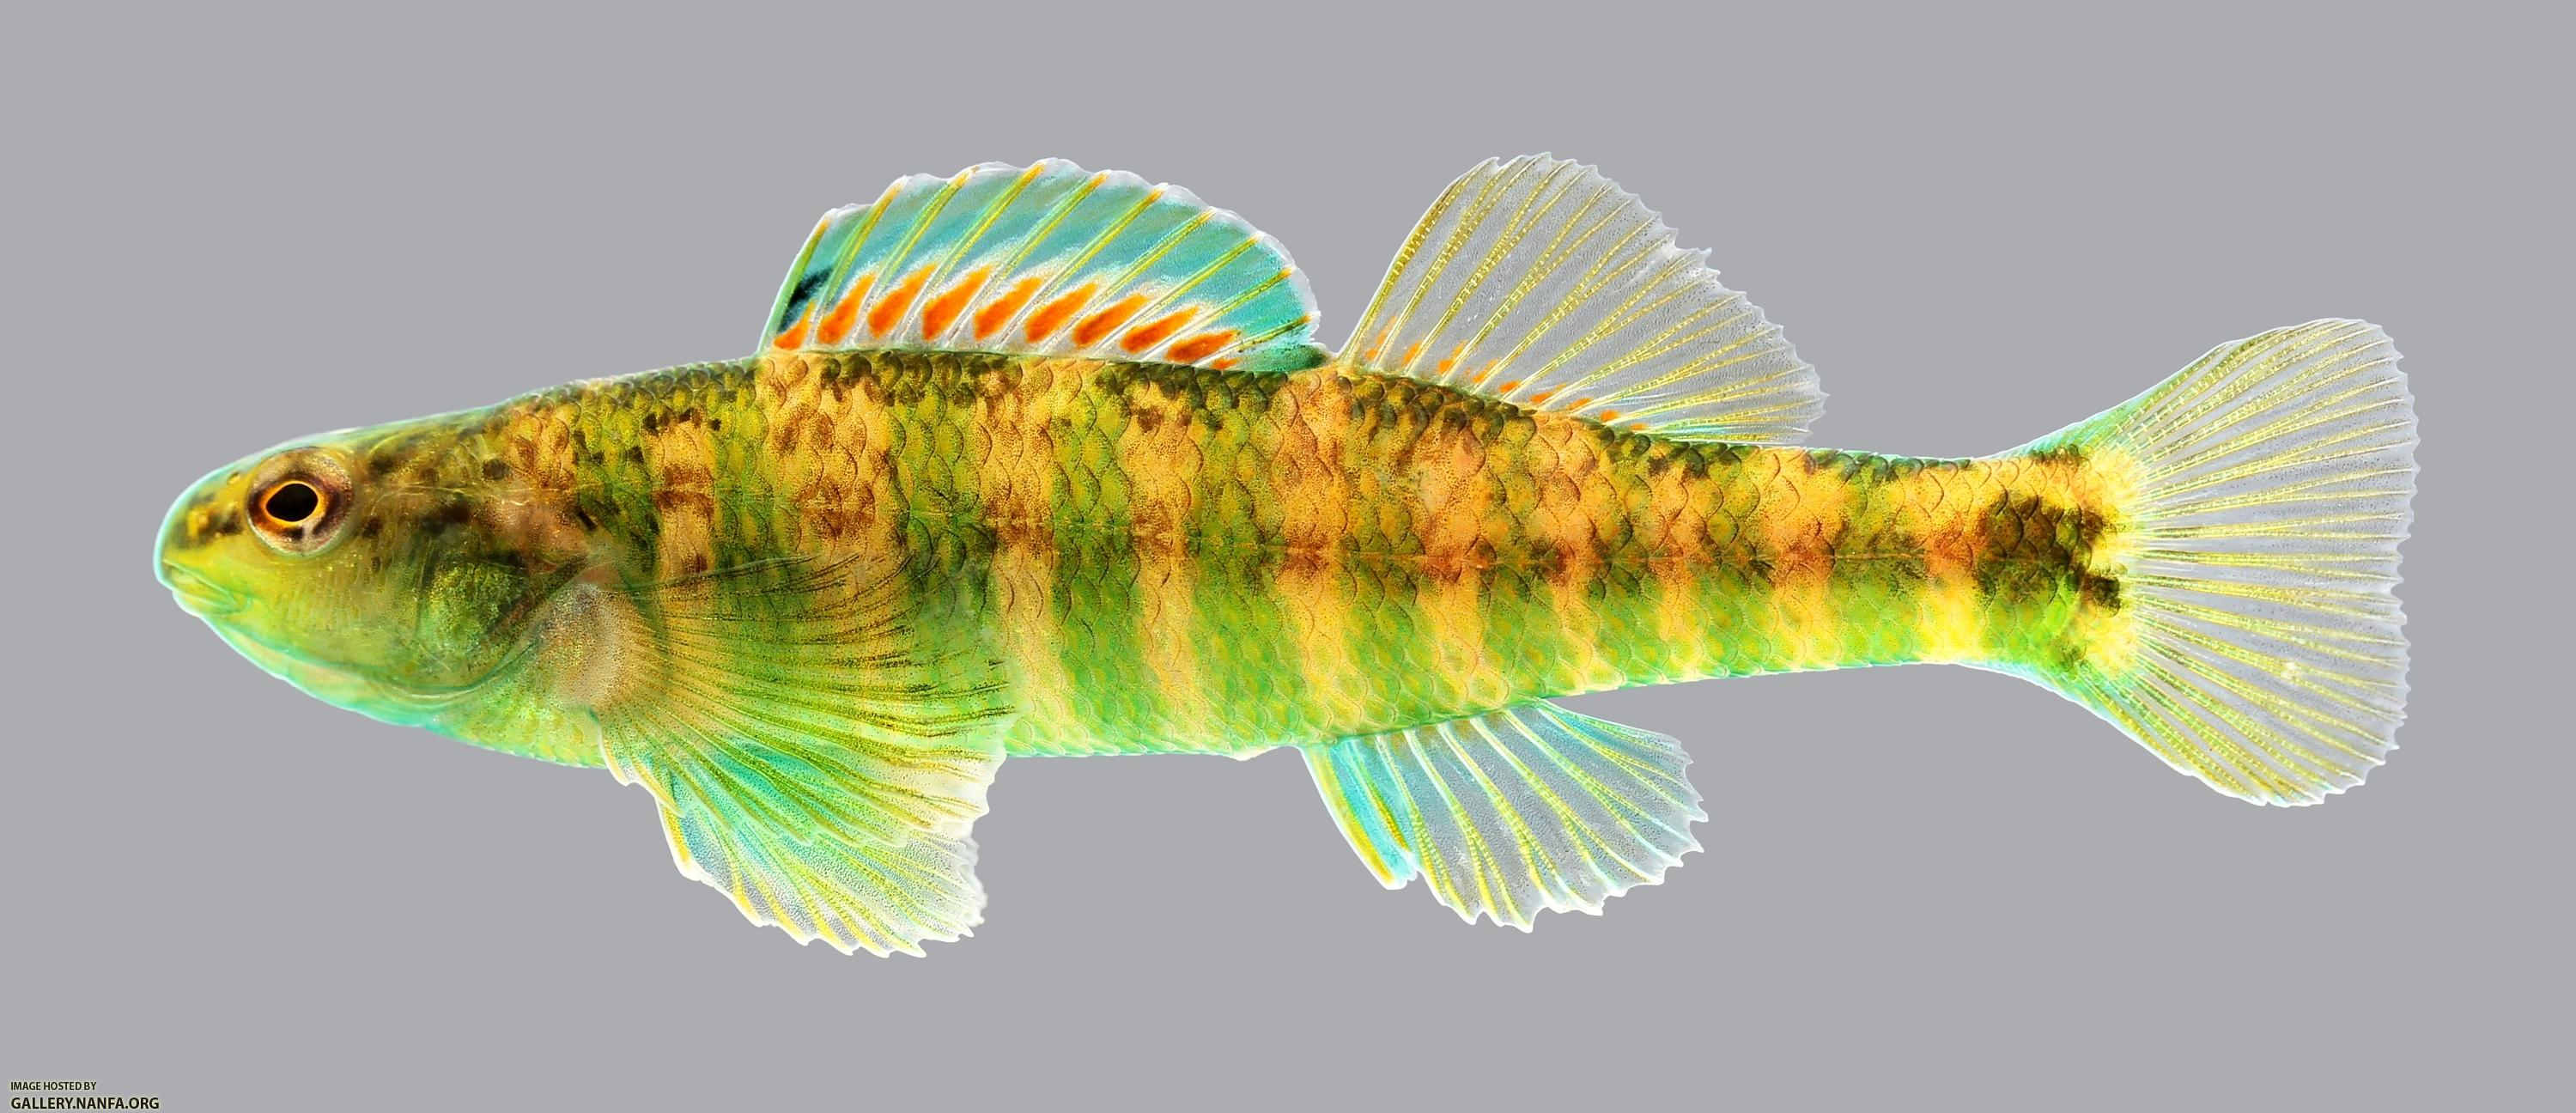 Etheostoma zonale Banded Darter 109